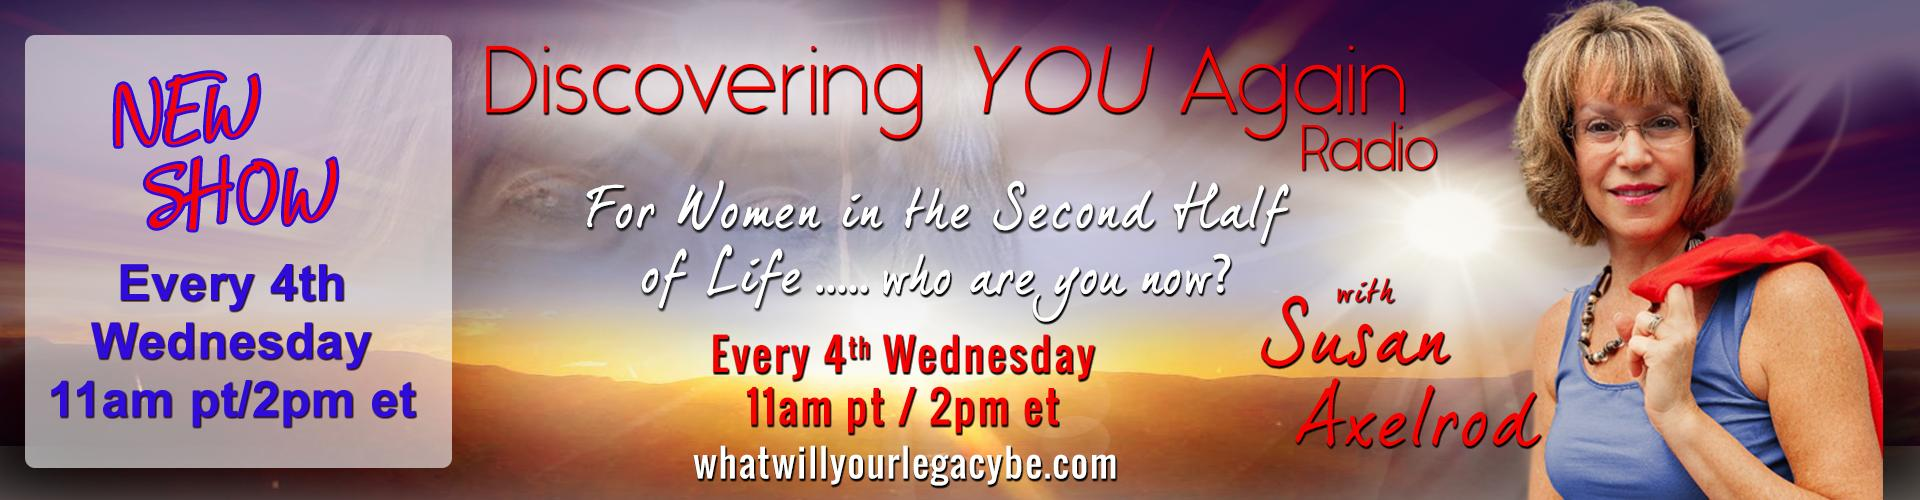 New Show Every 4th Wednesday 11am pacific - Discovering YOU Again Radio with Susan Axelrod